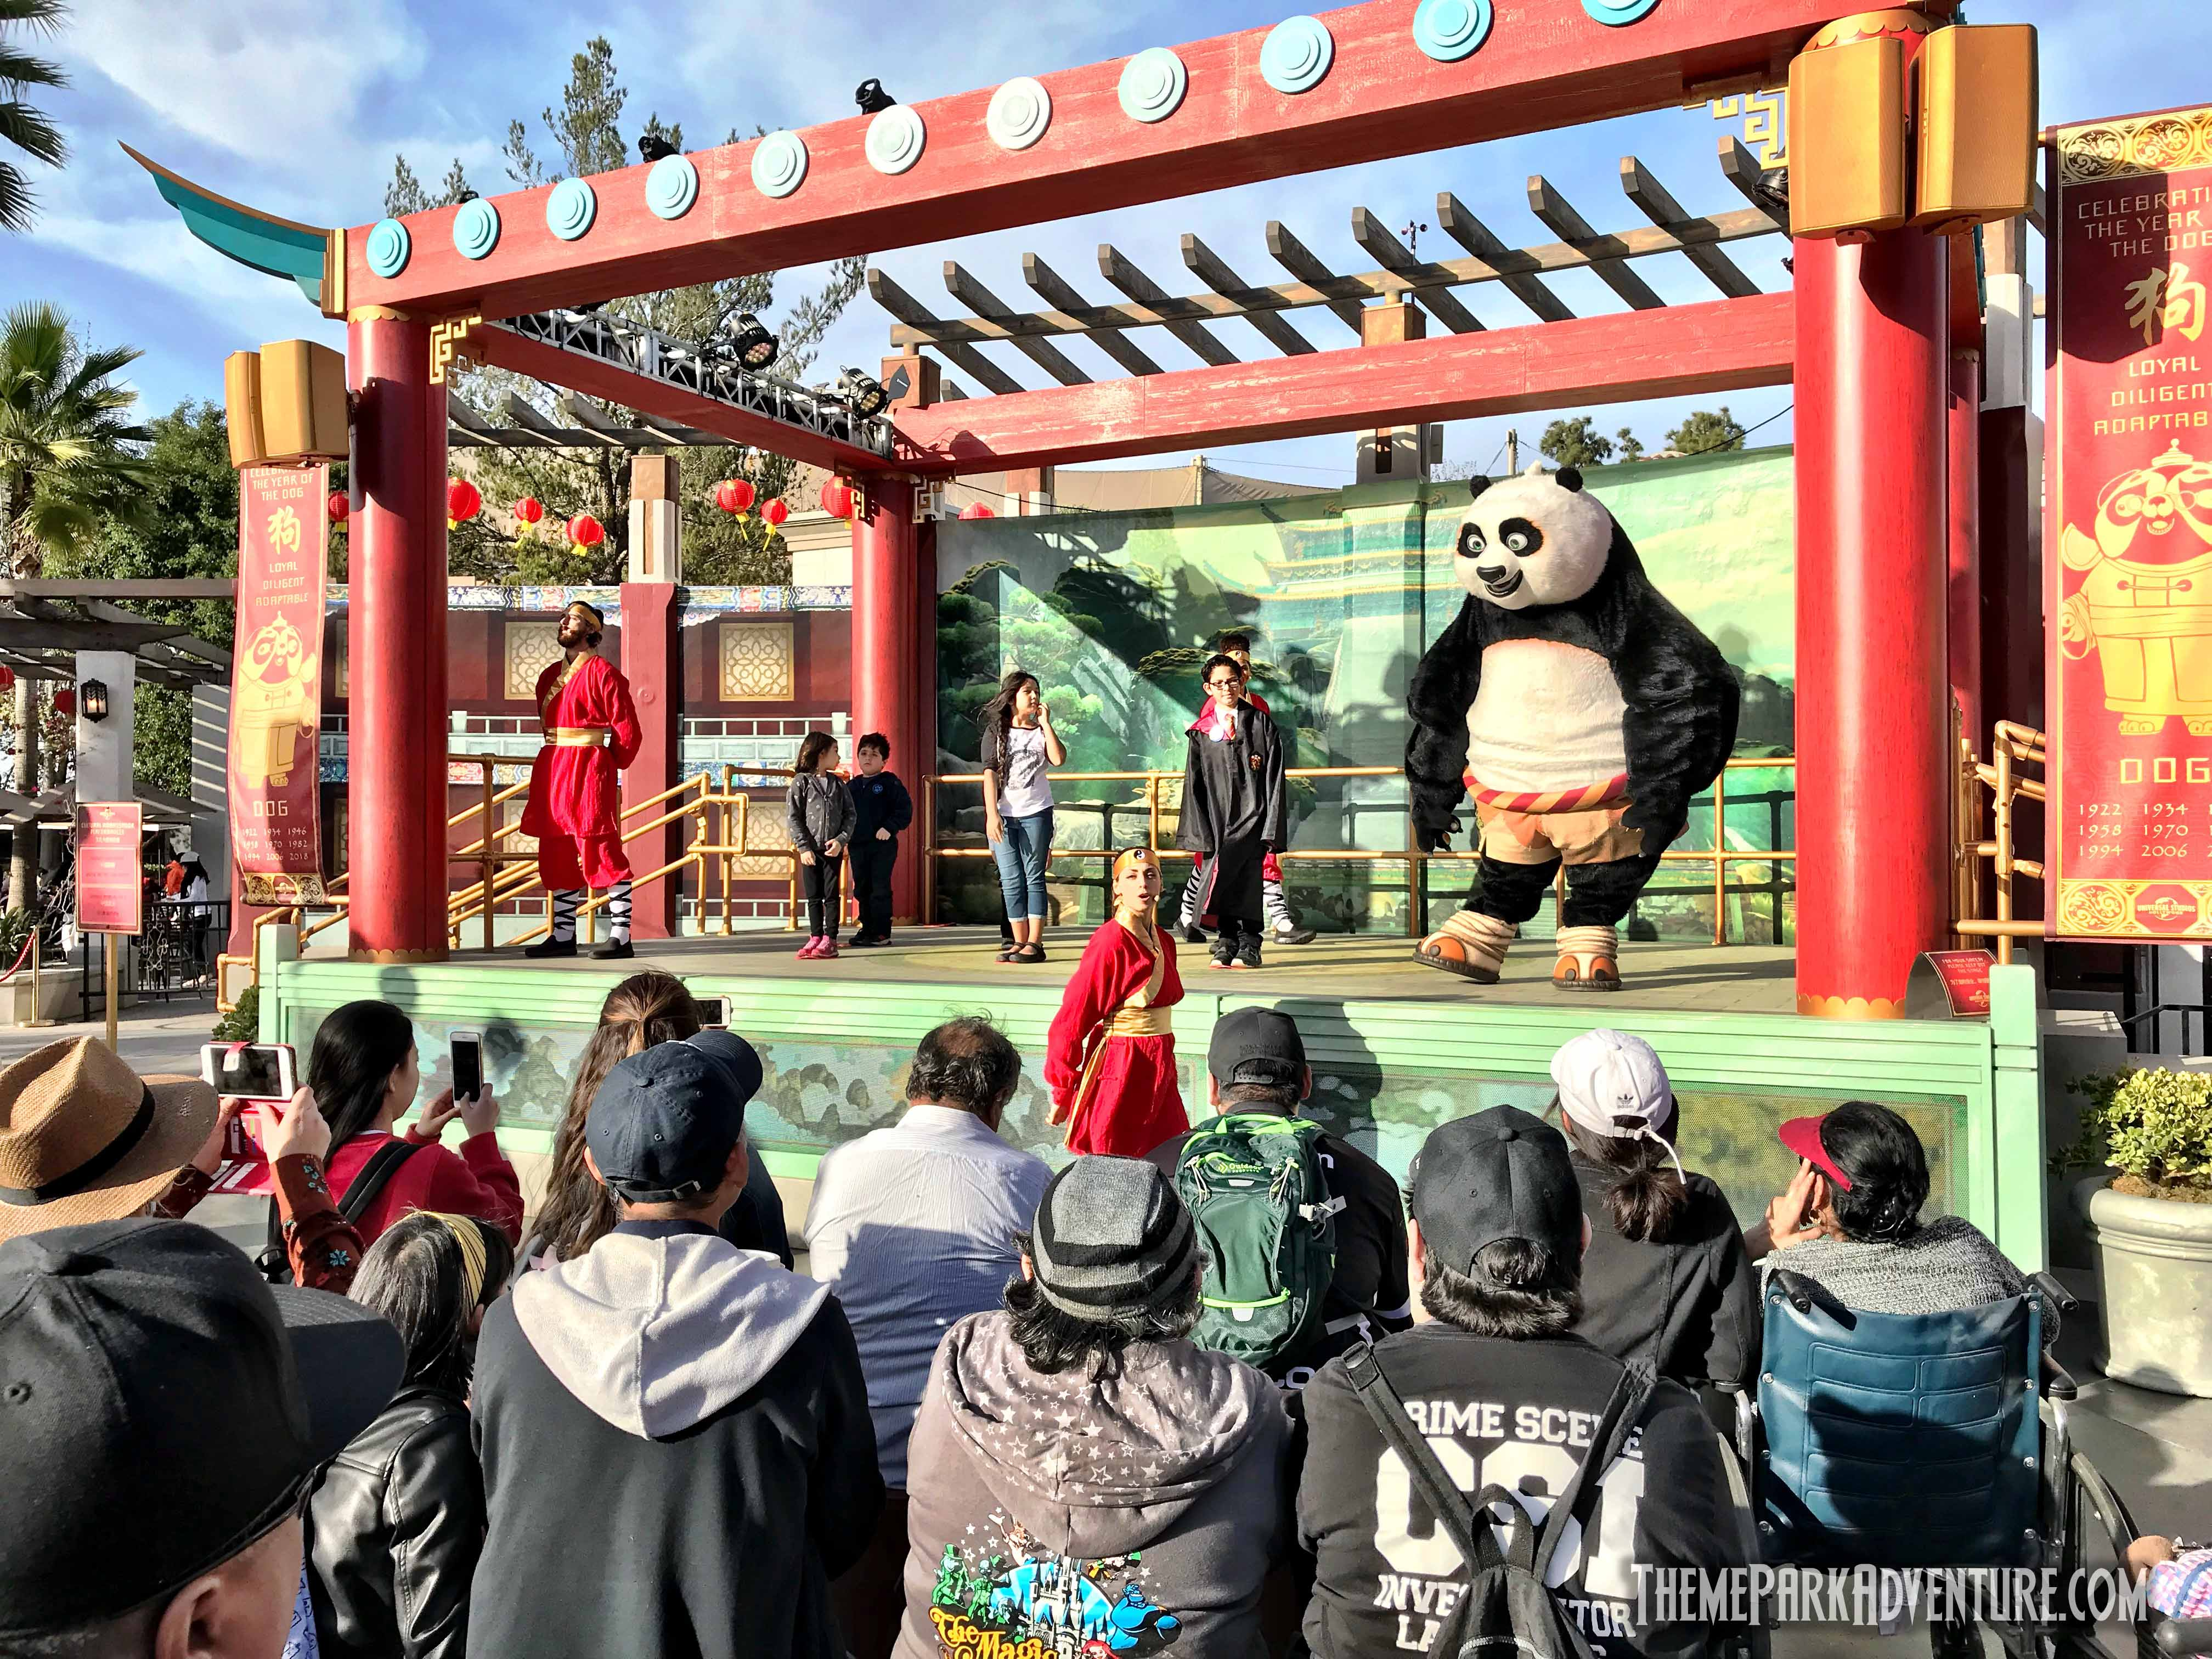 there are other character meet and greets in the plaza with po and friends as well as the expected selection of lunar new year 2018 merchandise